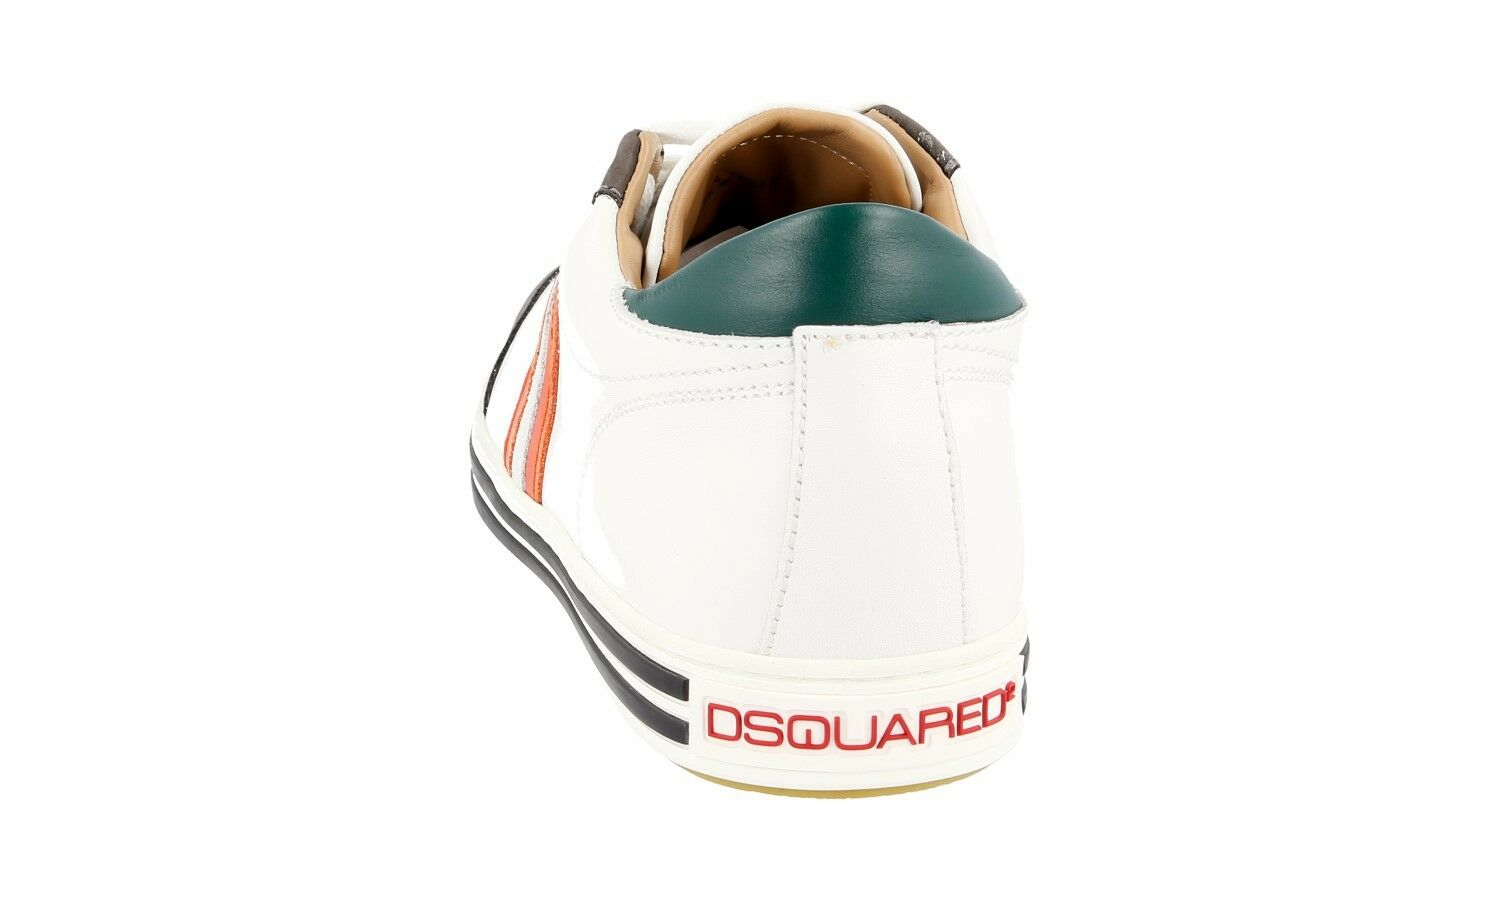 AUTHENTIC LUXURY LUXURY LUXURY DSQUARED SNEAKERS SHOES SN408 WHITE NEW US 10 EU 40 40,5 537d9b